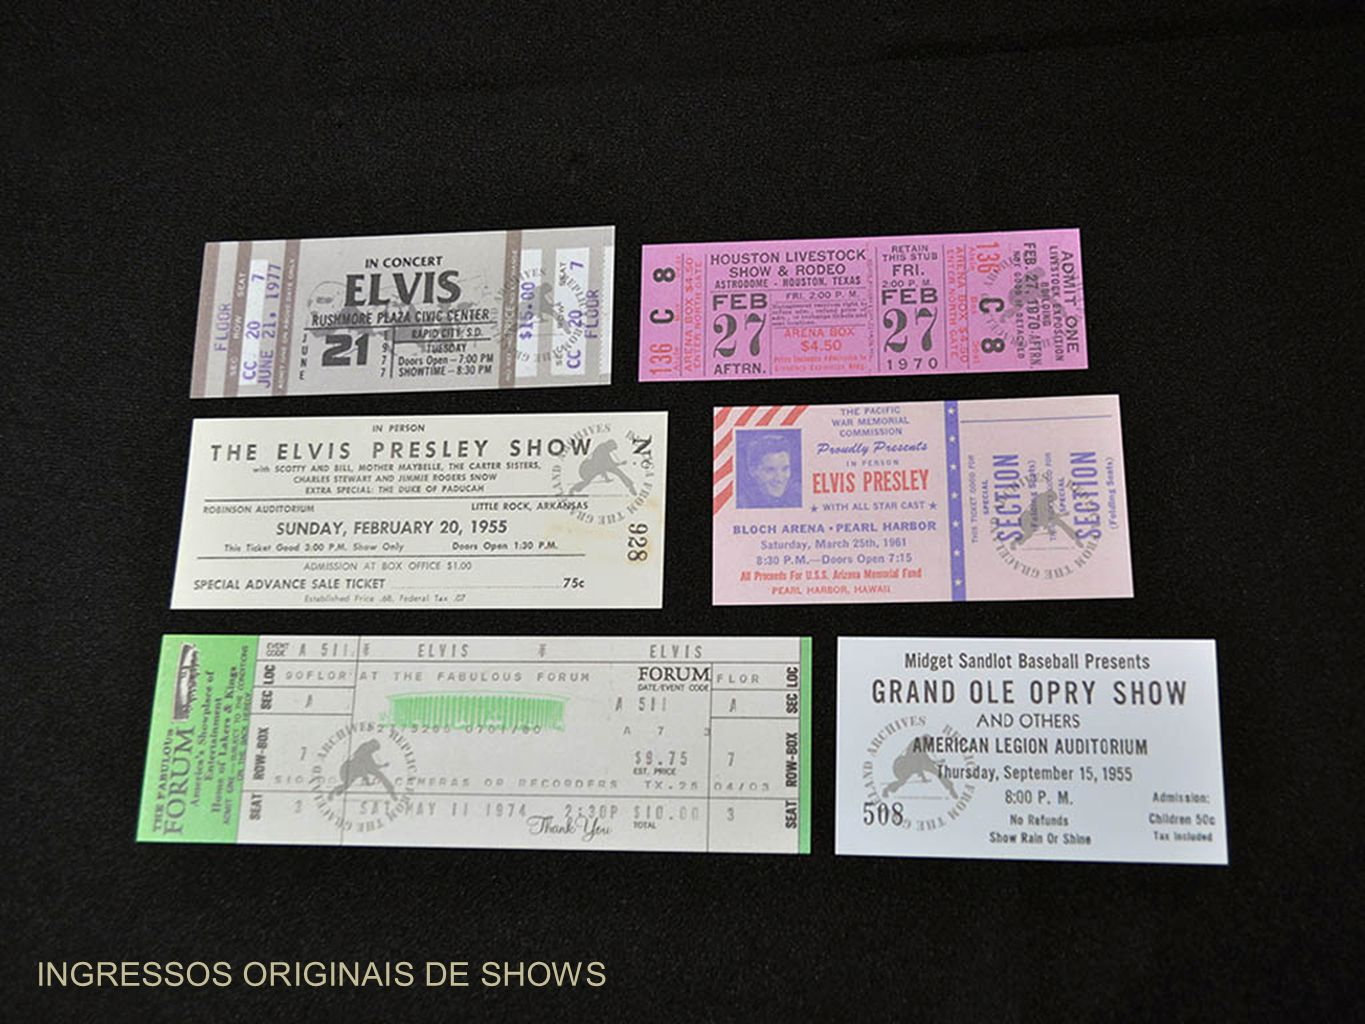 INGRESSOS ORIGINAIS DE SHOWS